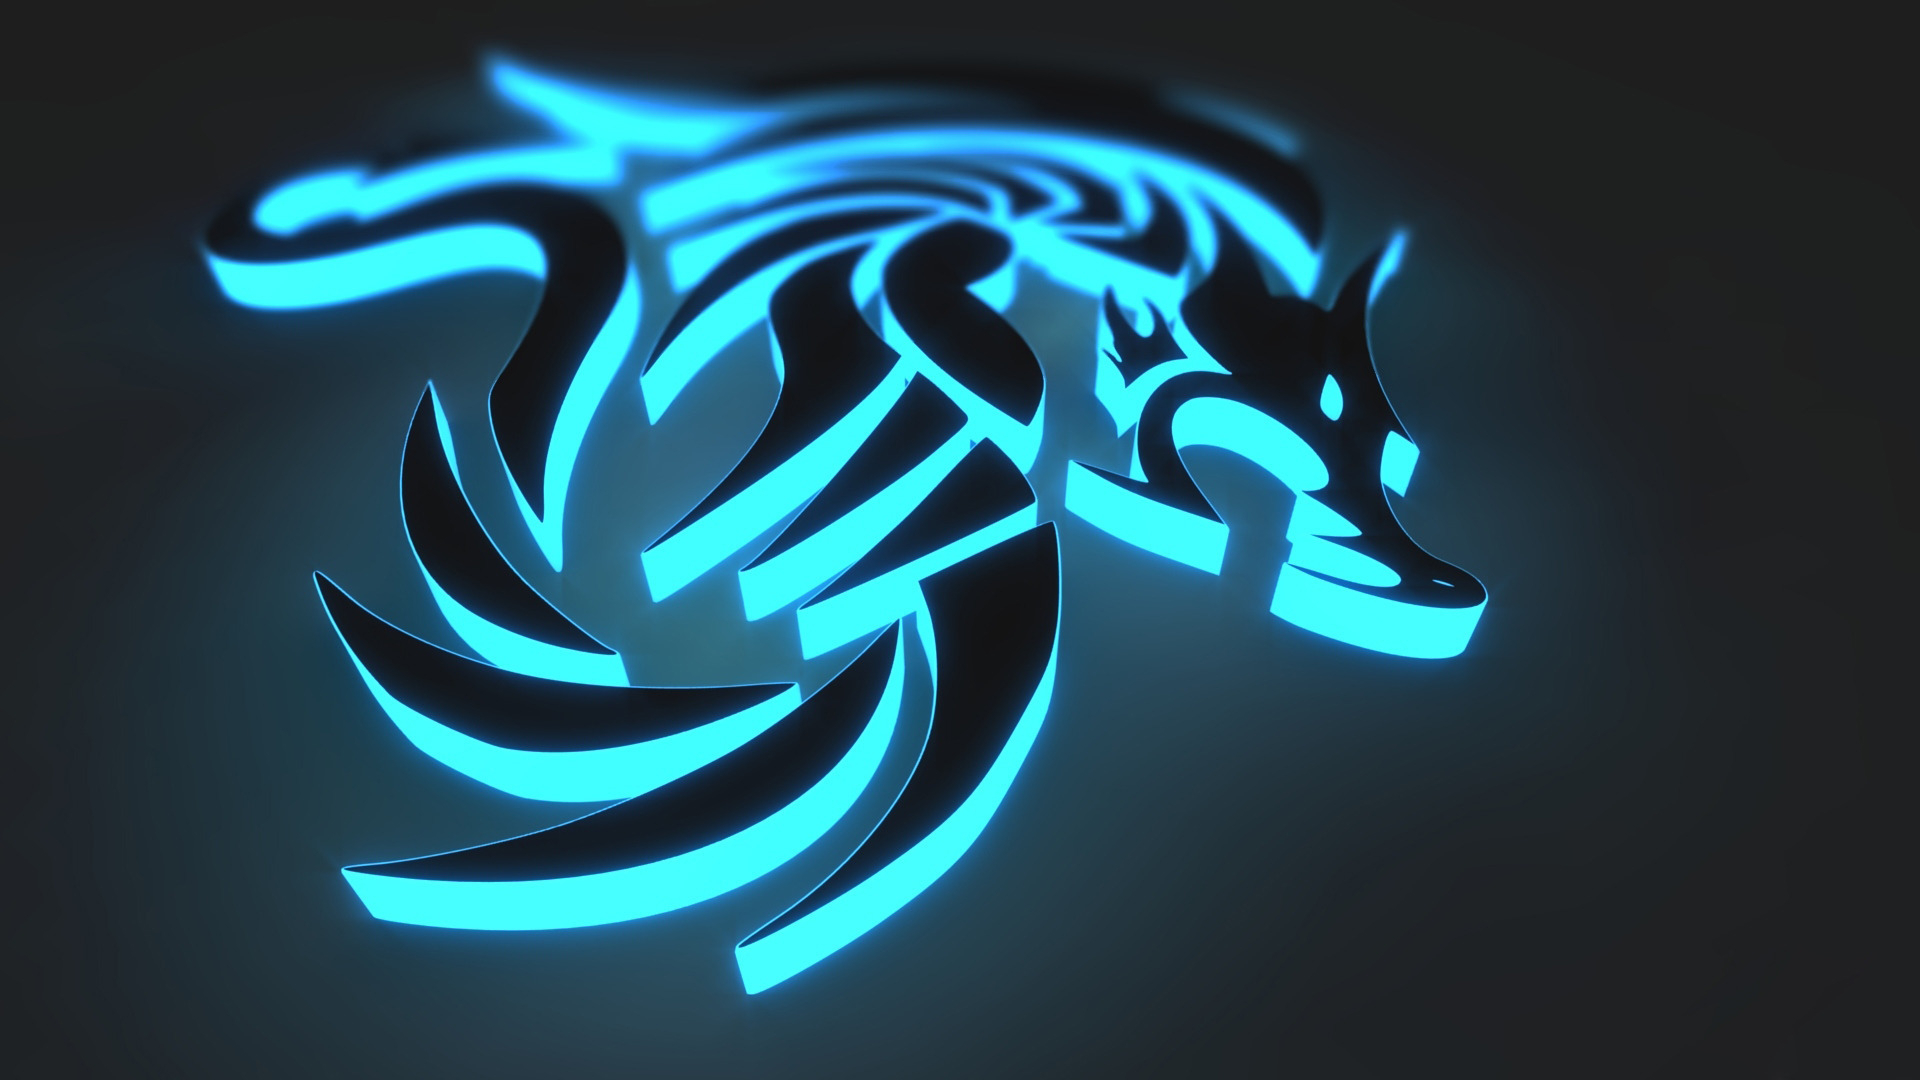 3d dragon tattoo wallpaper download this 3d abstract wallpaper from 1920x1080